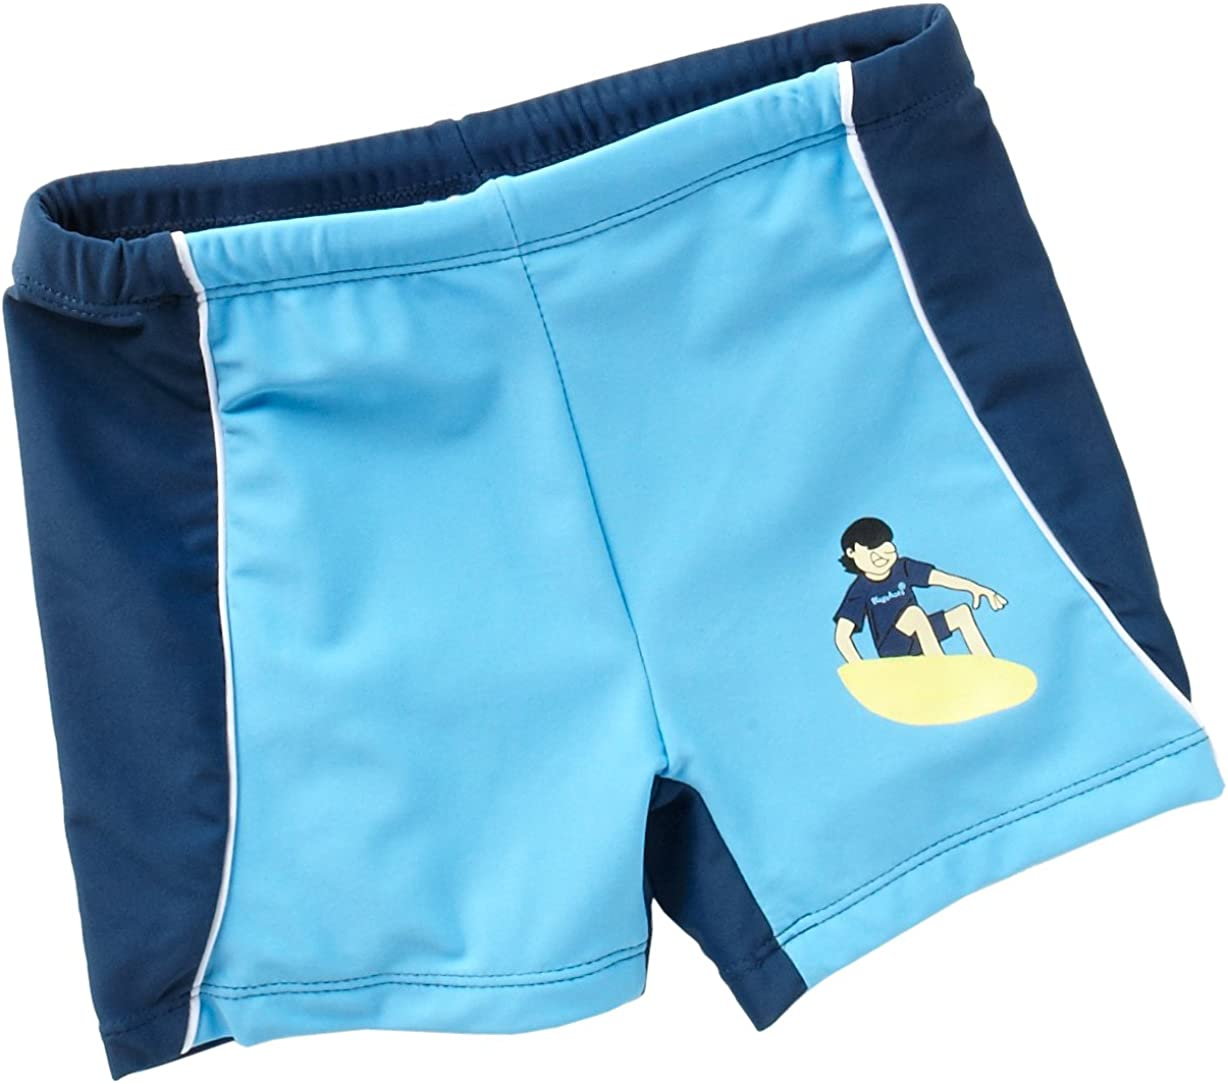 Playshoes UV Protection Year-end annual account Surfer Shorts Swim Trunk security Collection